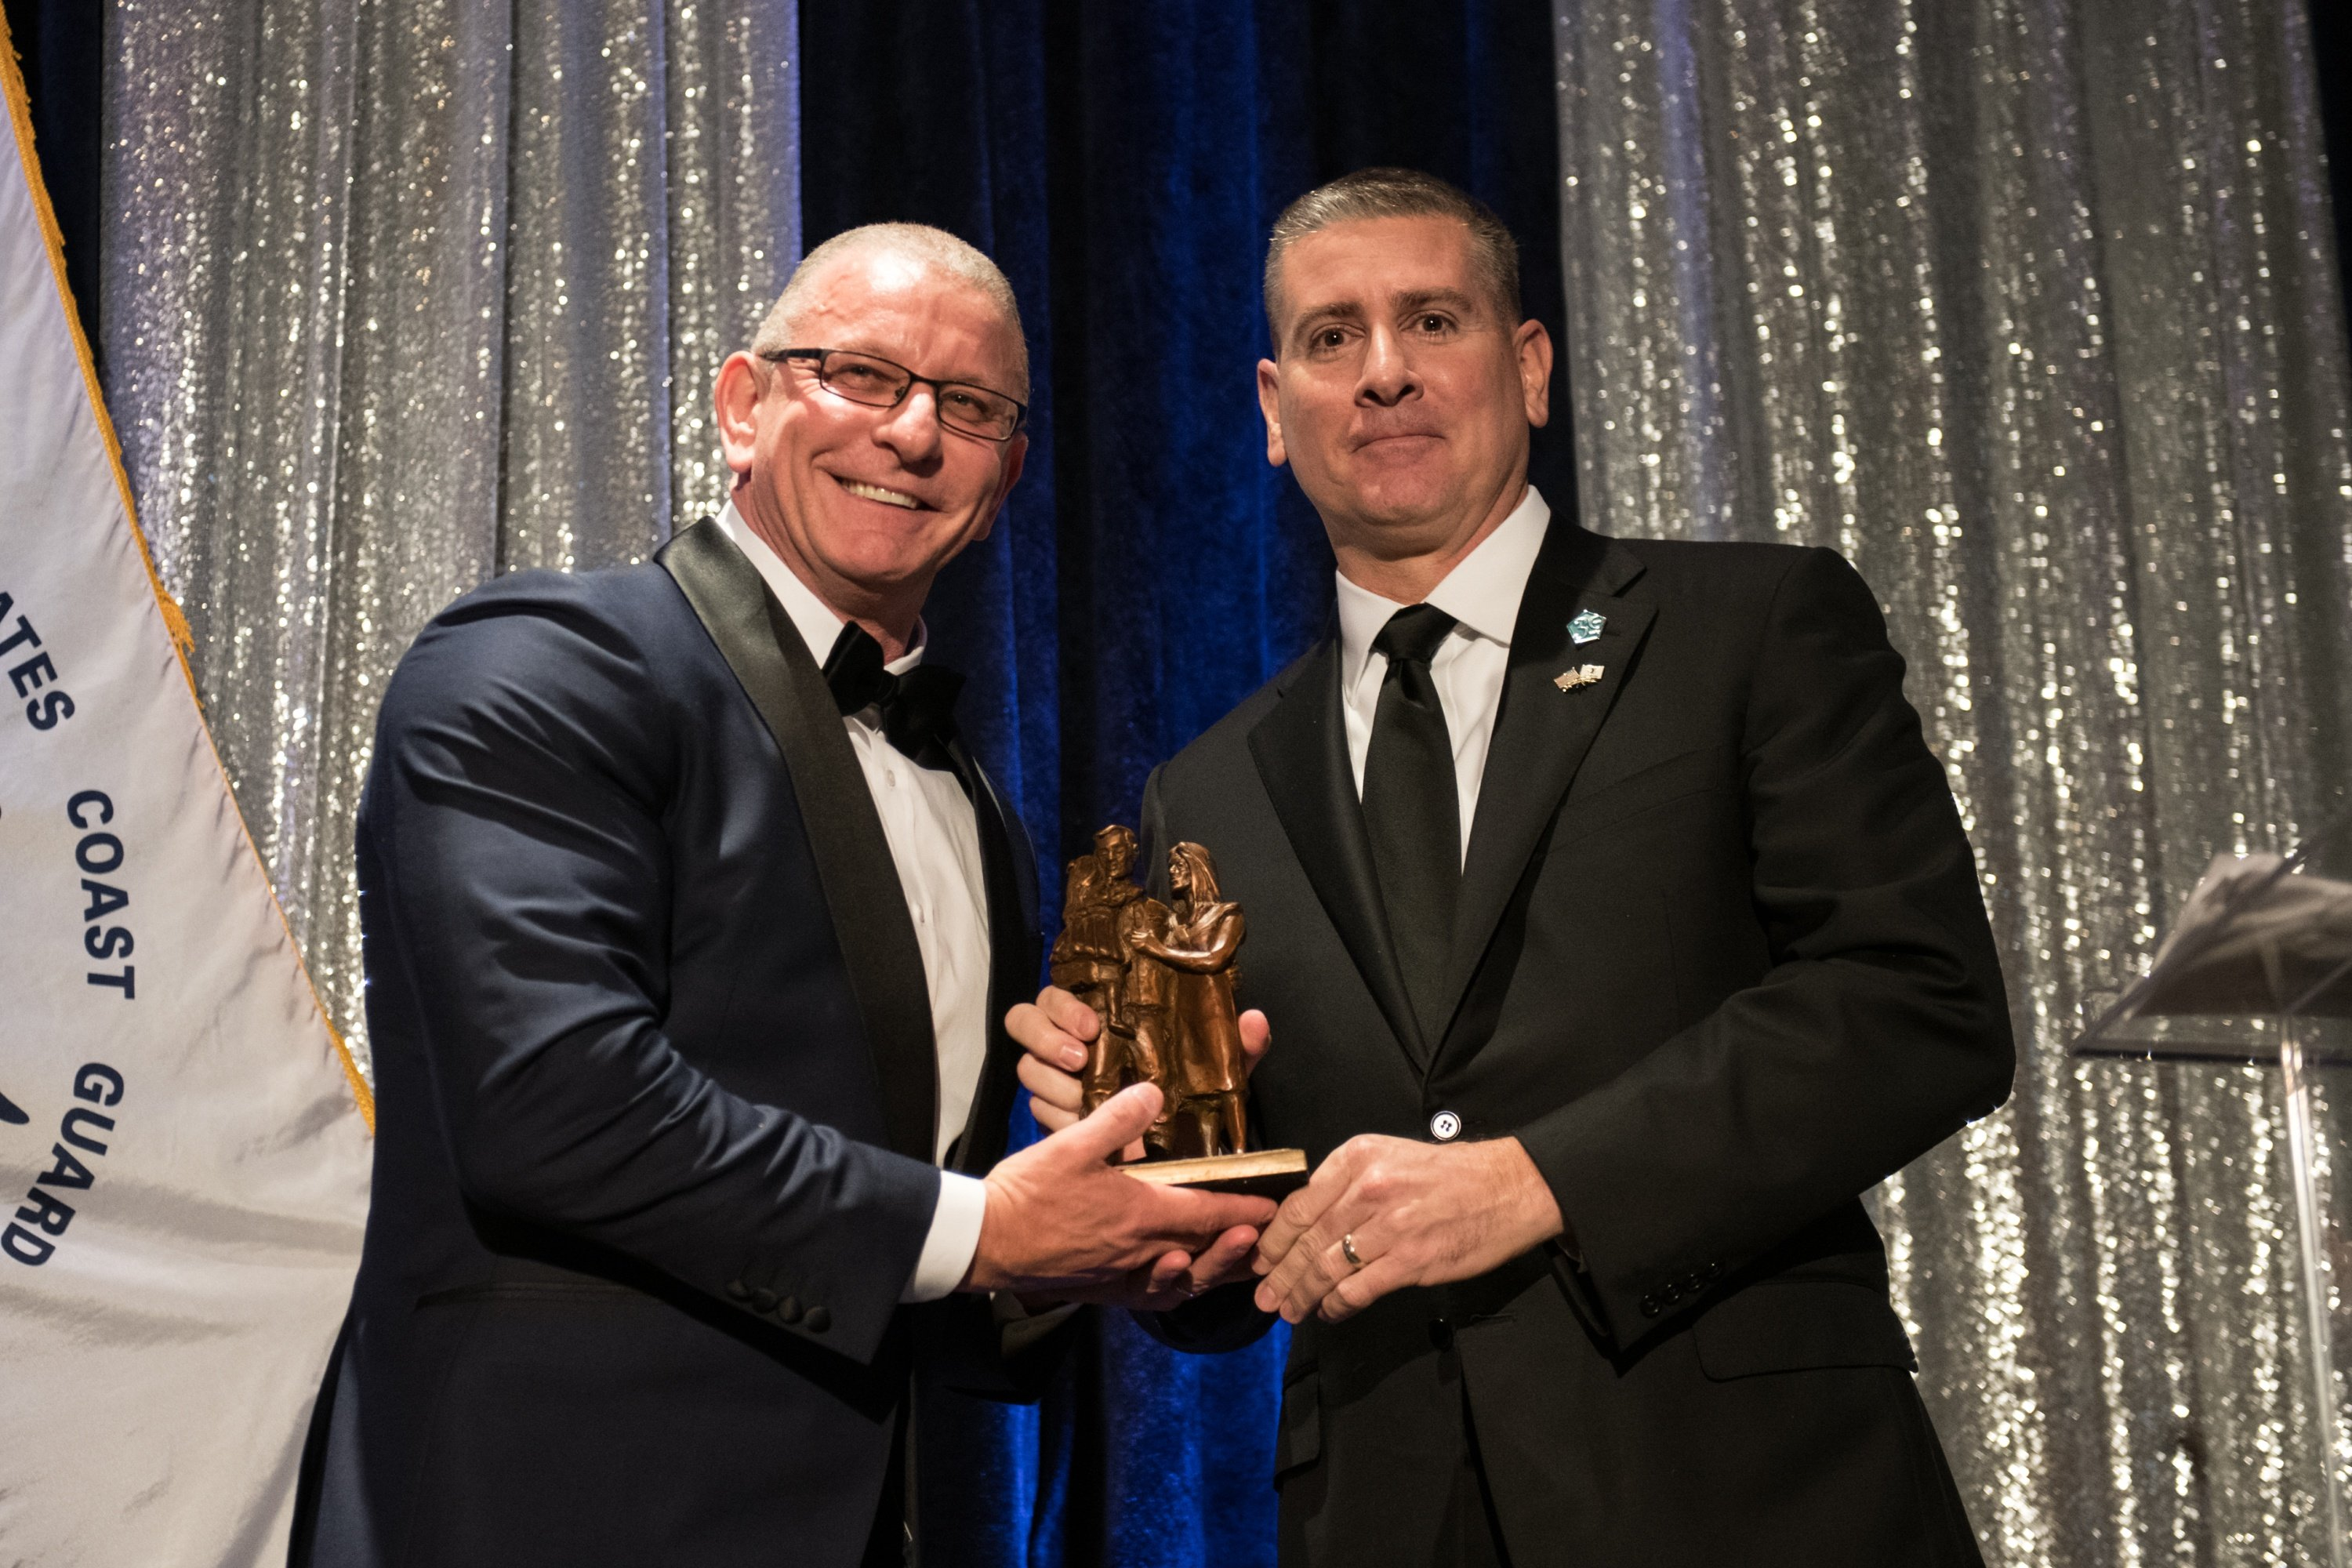 vcjcs-at-asymca-angels-of-the-battlefield-awards-gala_43256747790_o